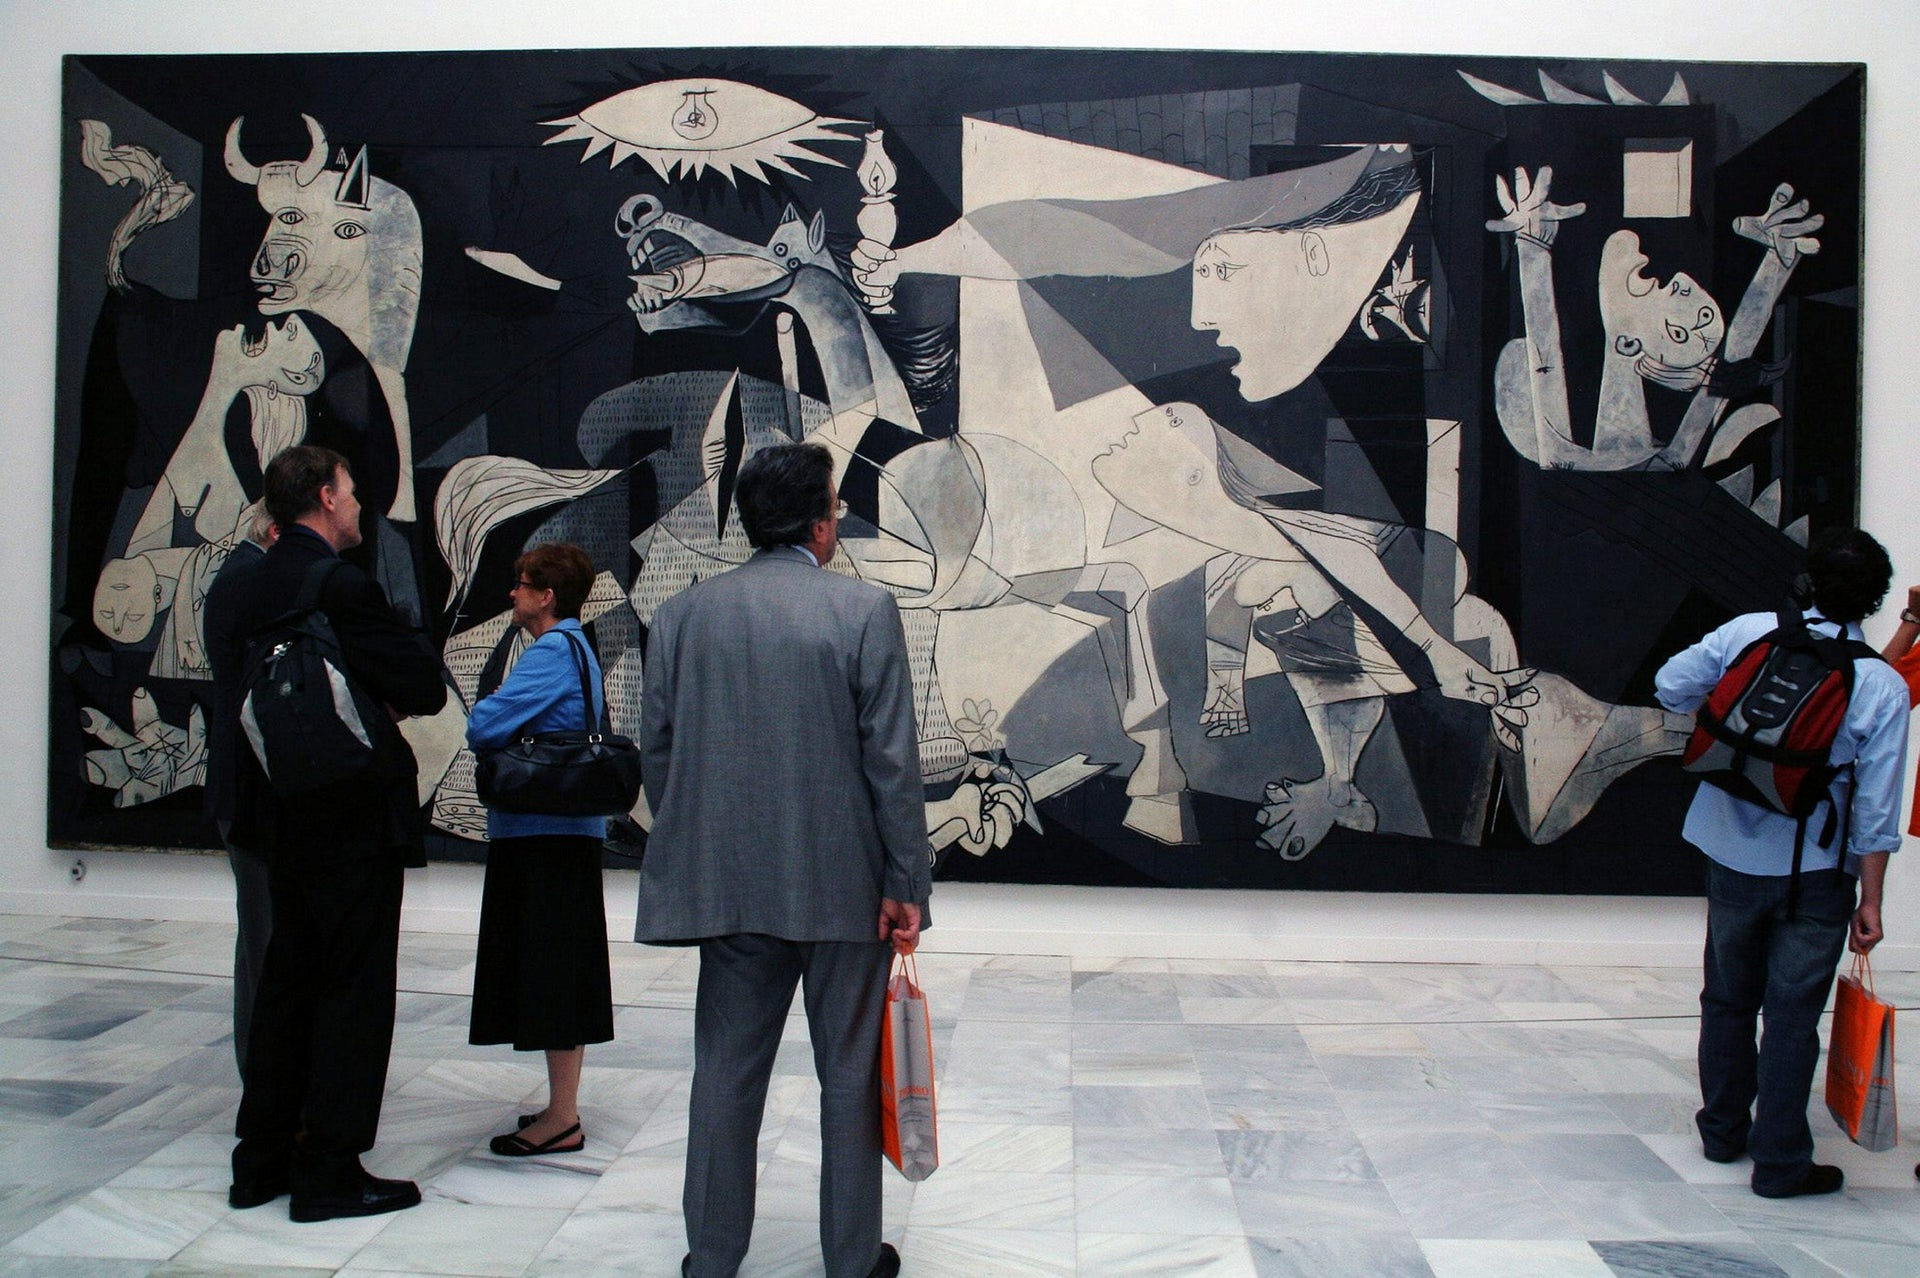 """People viewing Pablo Picasso's """"Guernica"""" at the Reina Sofia Museum in Madrid, 2006."""